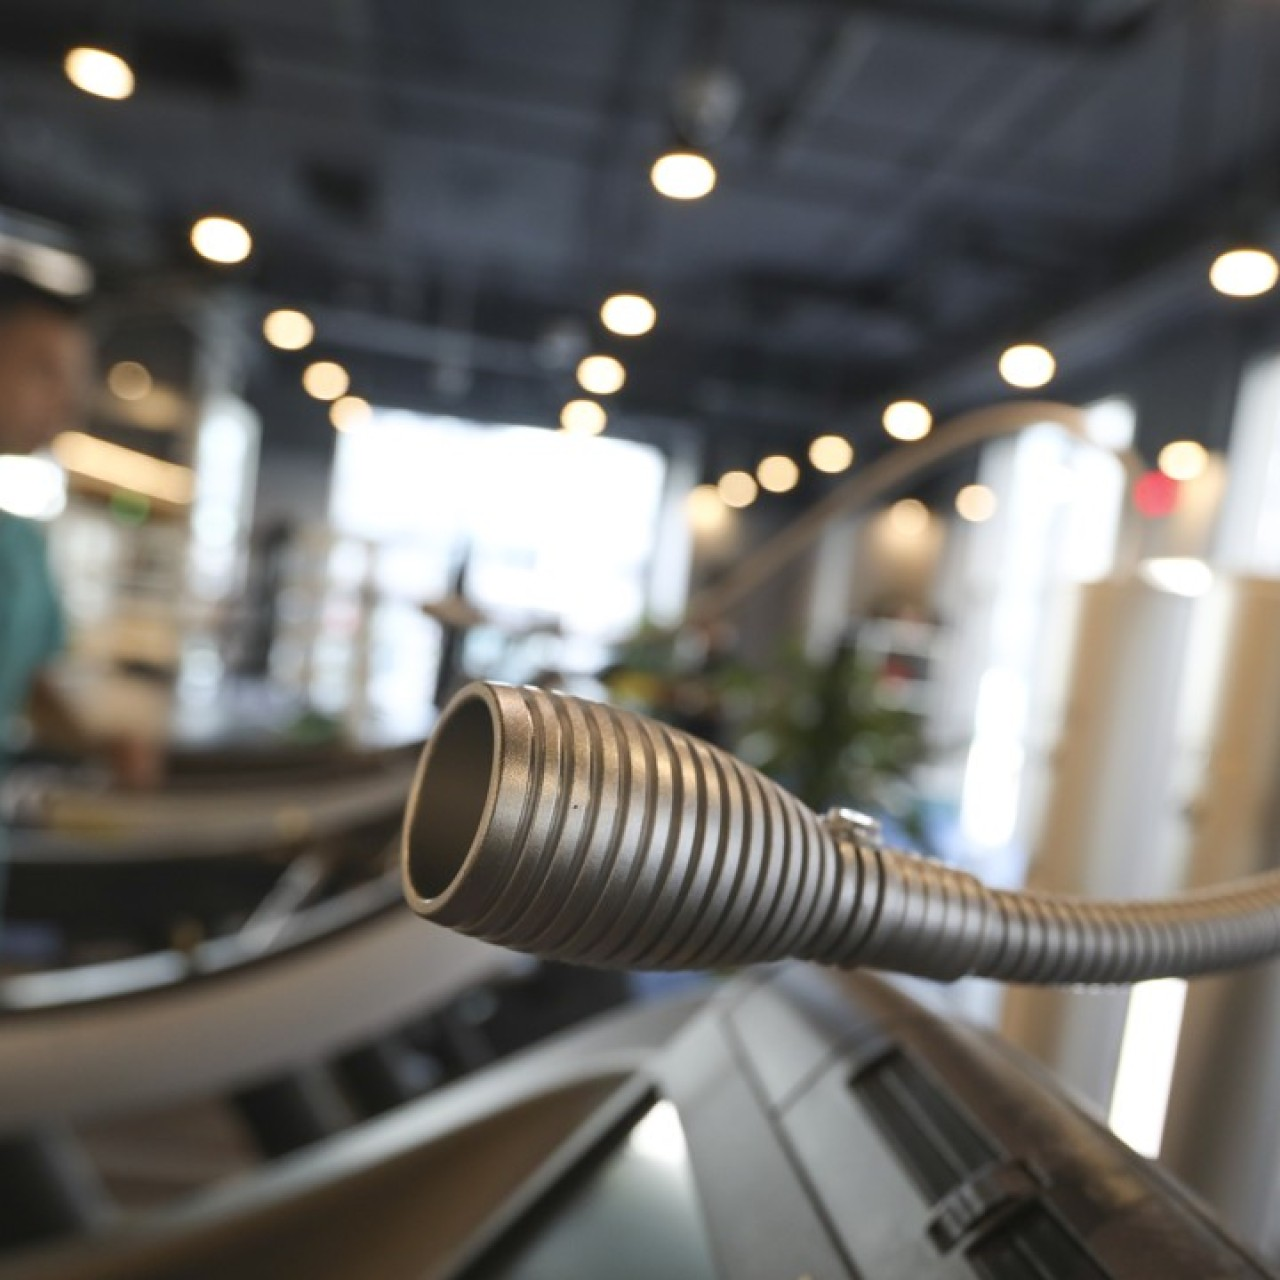 Purified air gyms with oxygen on tap to boost your workout